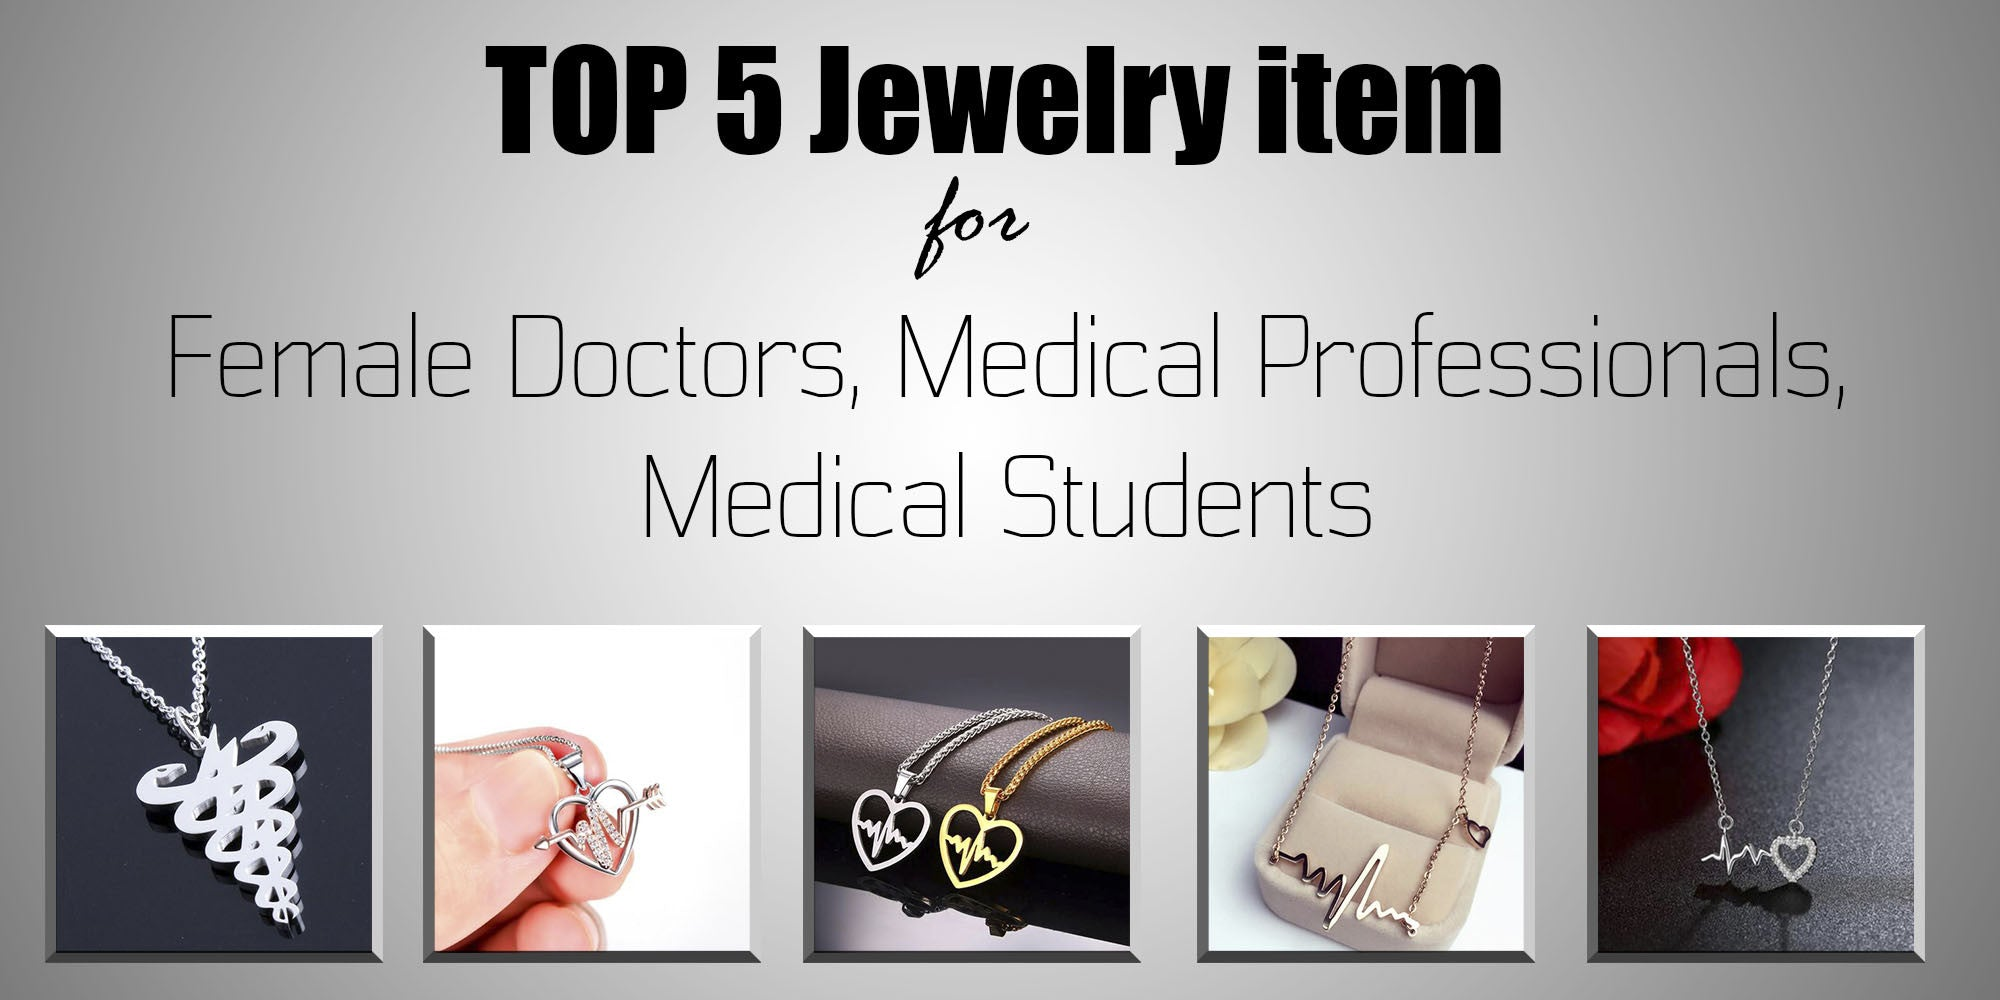 Top 5 Jewelry Items for Female Doctors, Medical Professionals or Medical Students